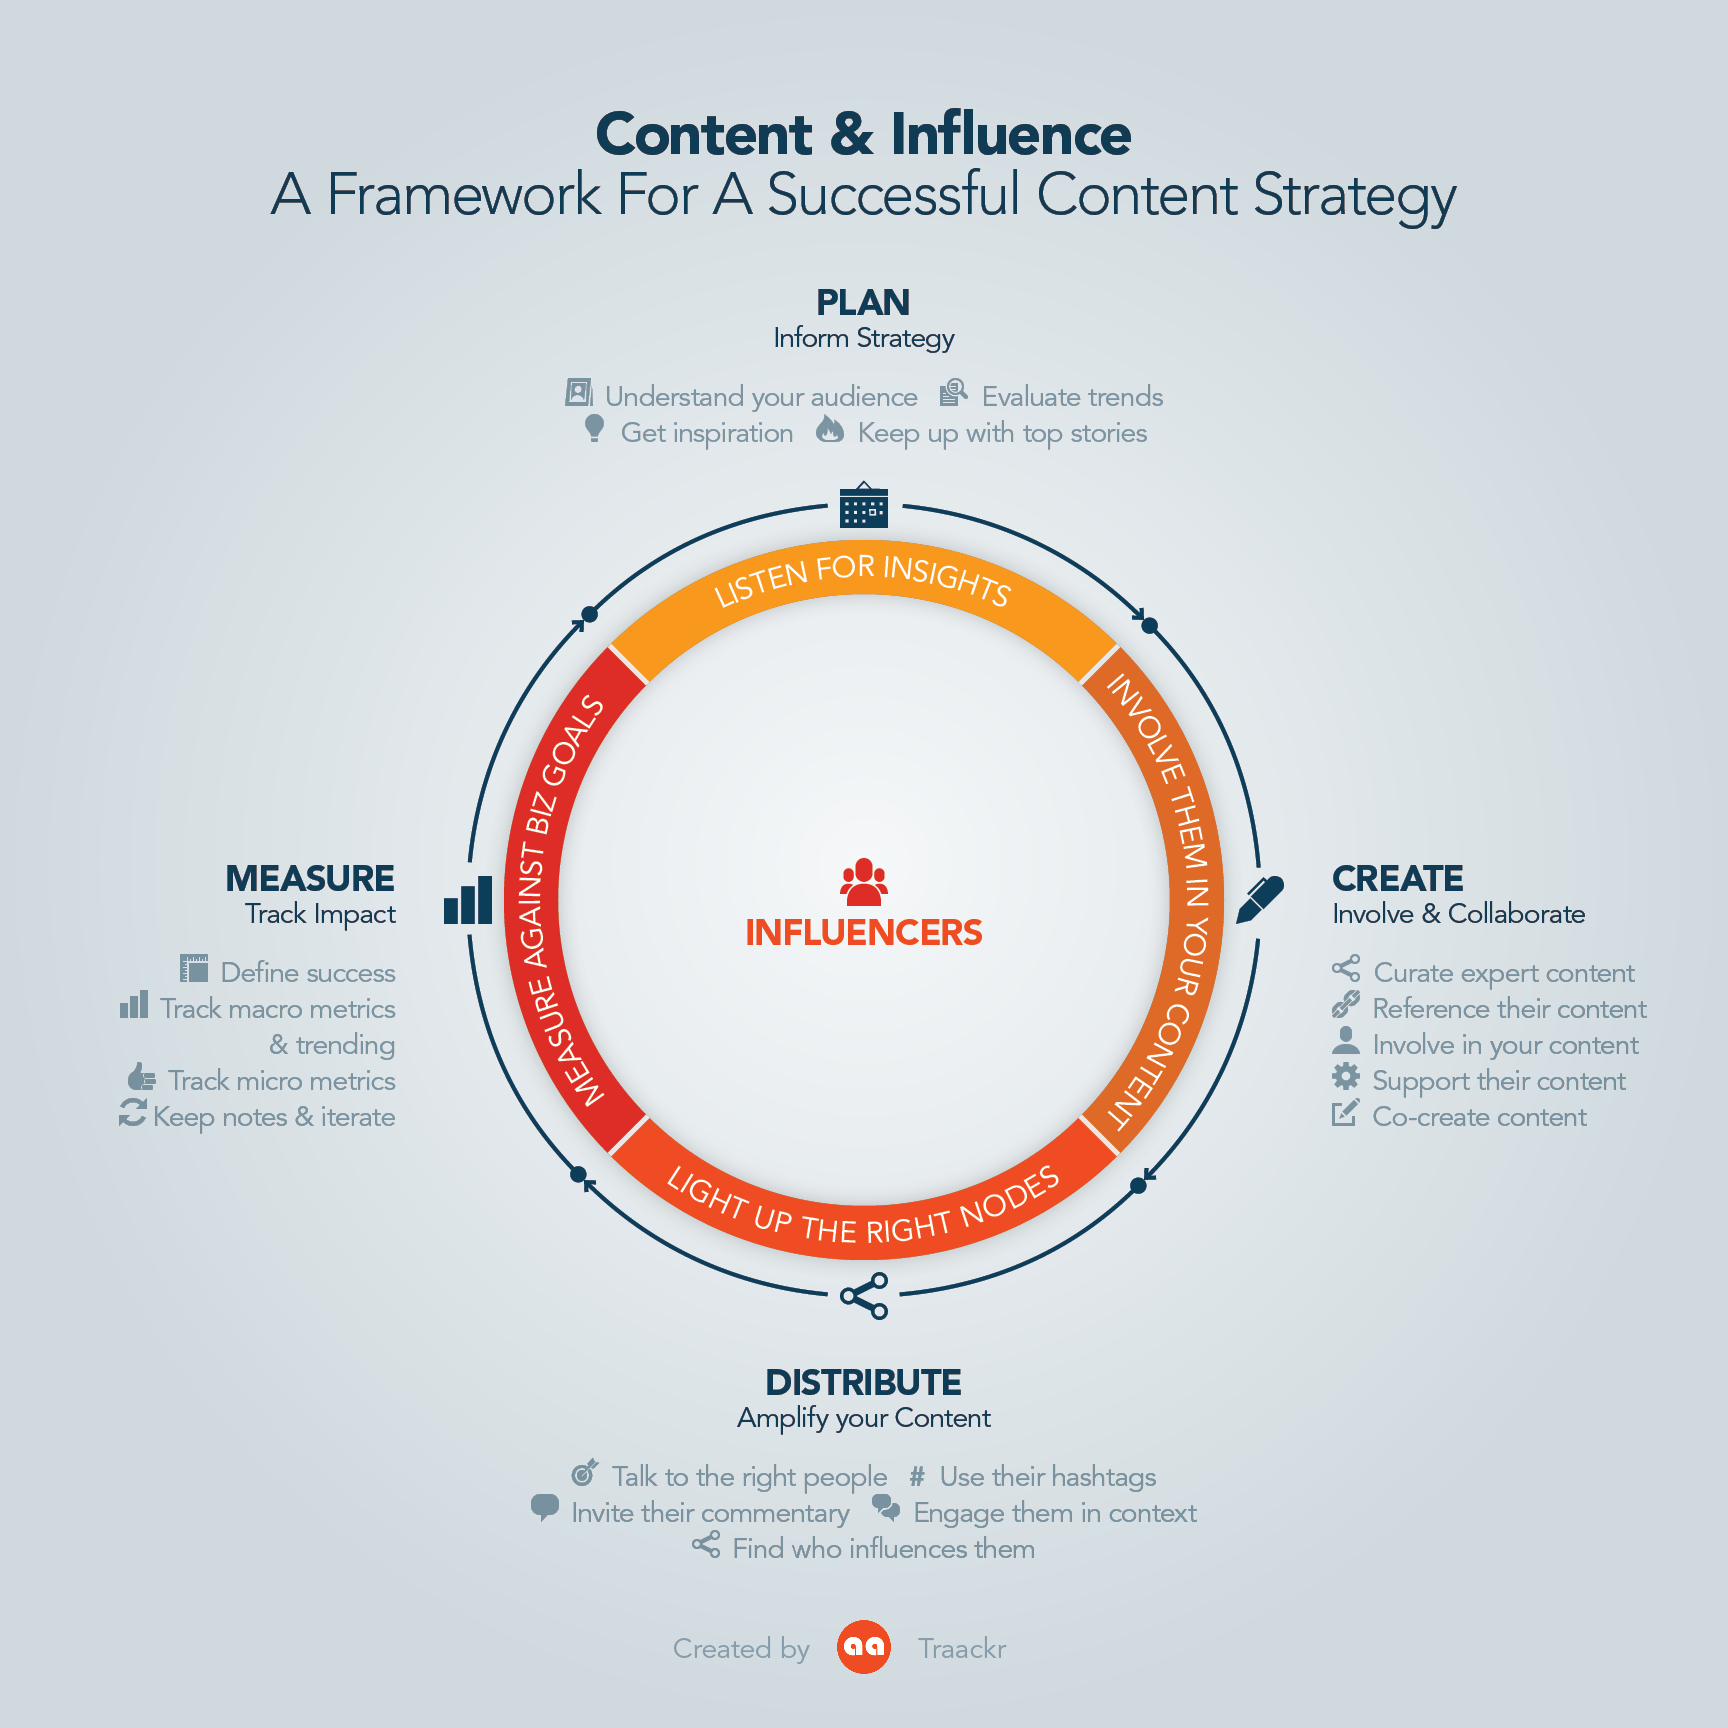 A framework for Content marketing & Influencer strategy